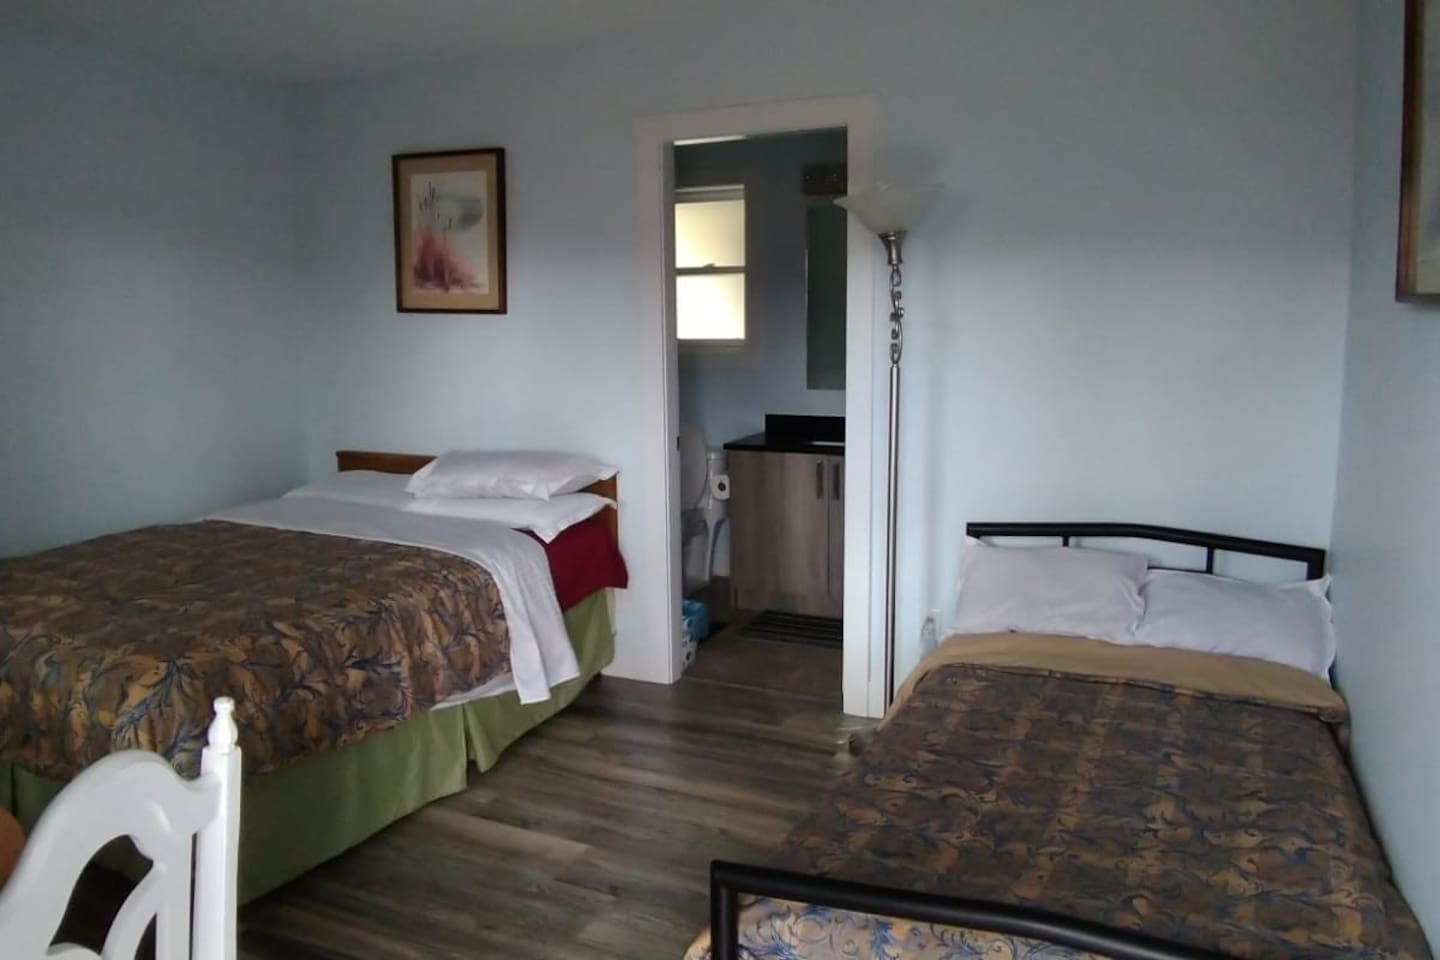 a good size bedroom with 2 beds and other facilities